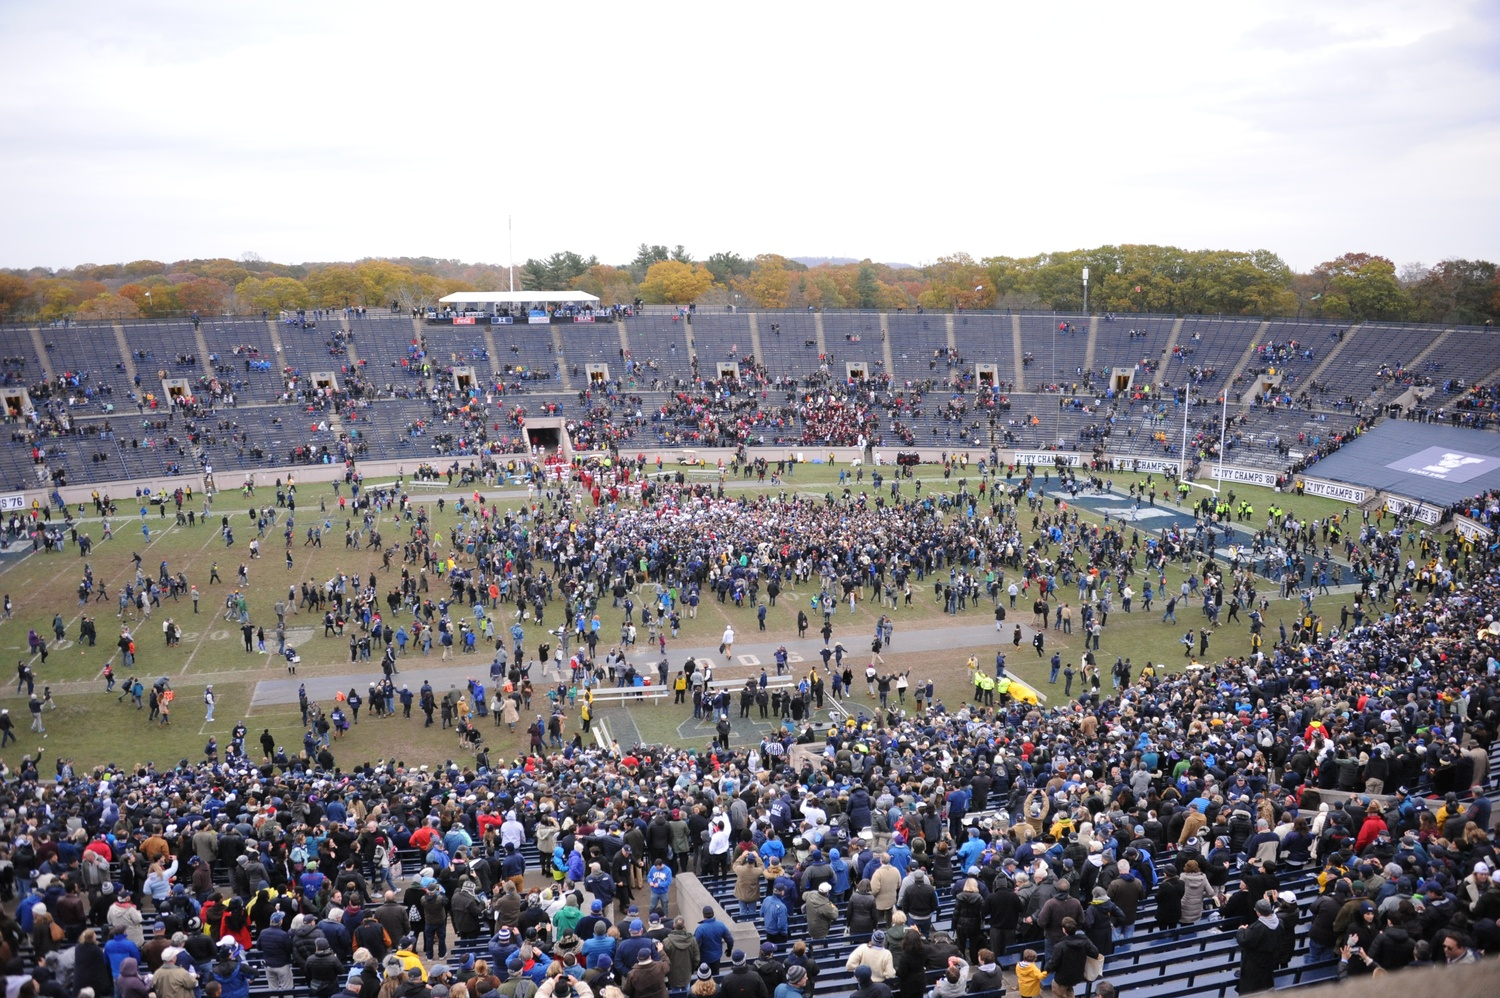 Storm in a Yale Bowl